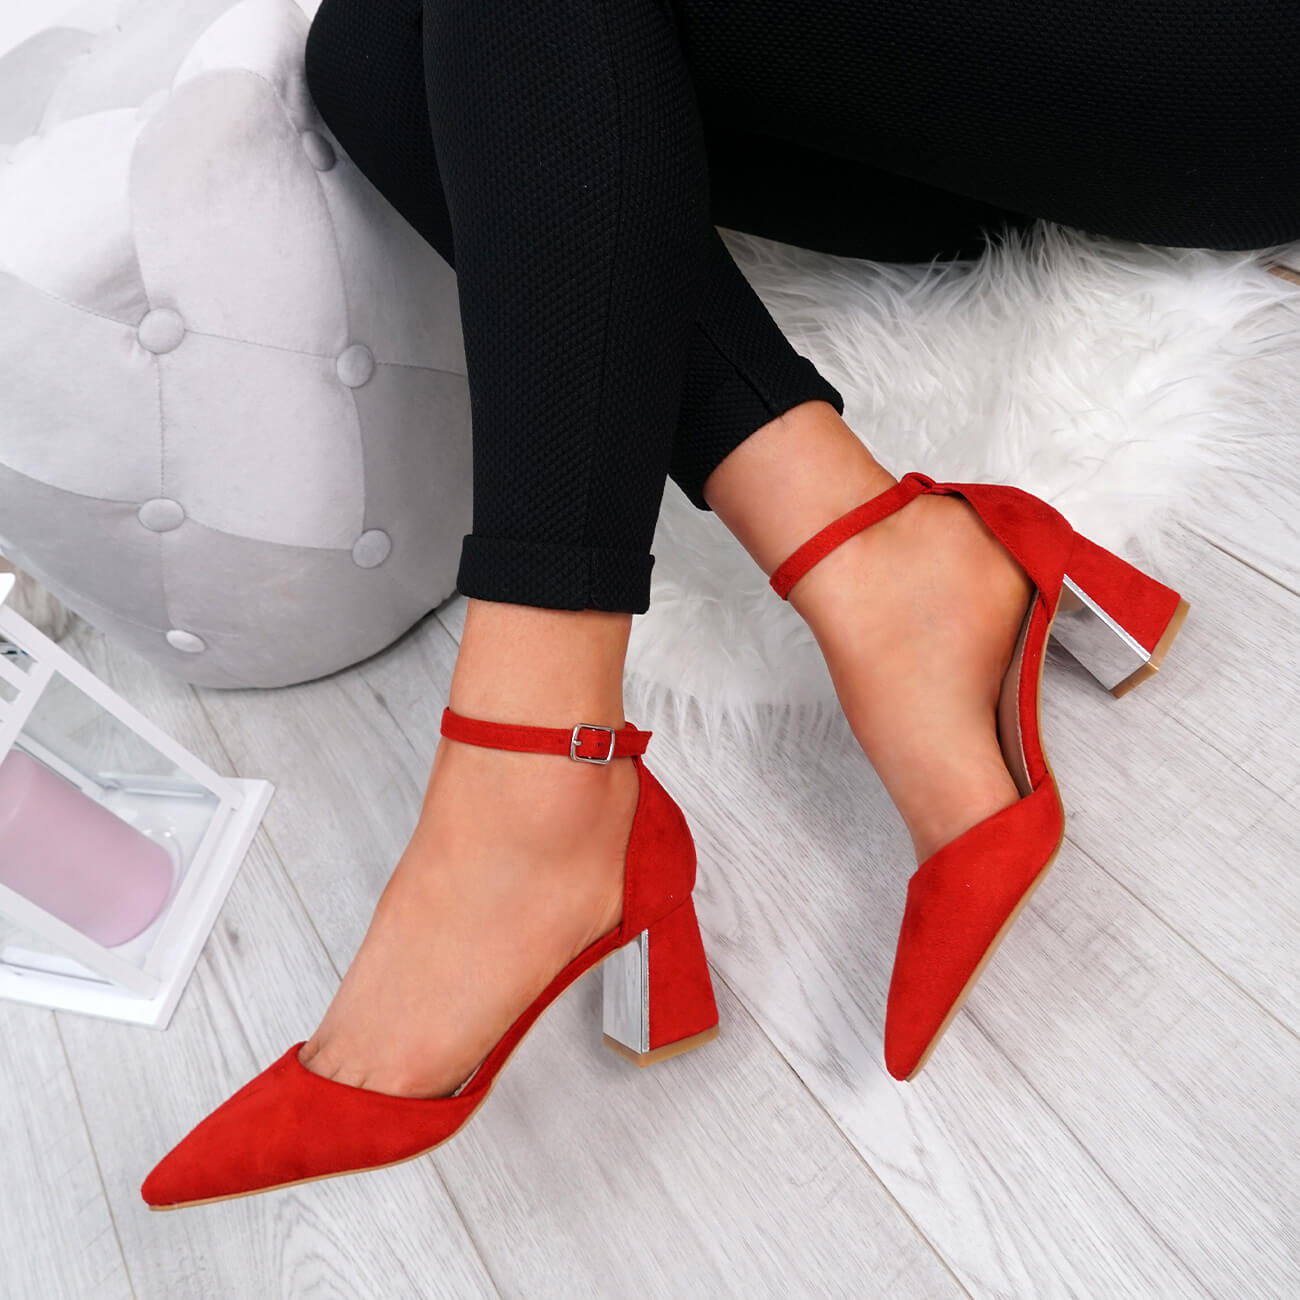 WOMENS-LADIES-ANKLE-STRAP-POINTED-HIGH-BLOCK-HEEL-PUMPS-COURT-SHOES-SIZE thumbnail 20